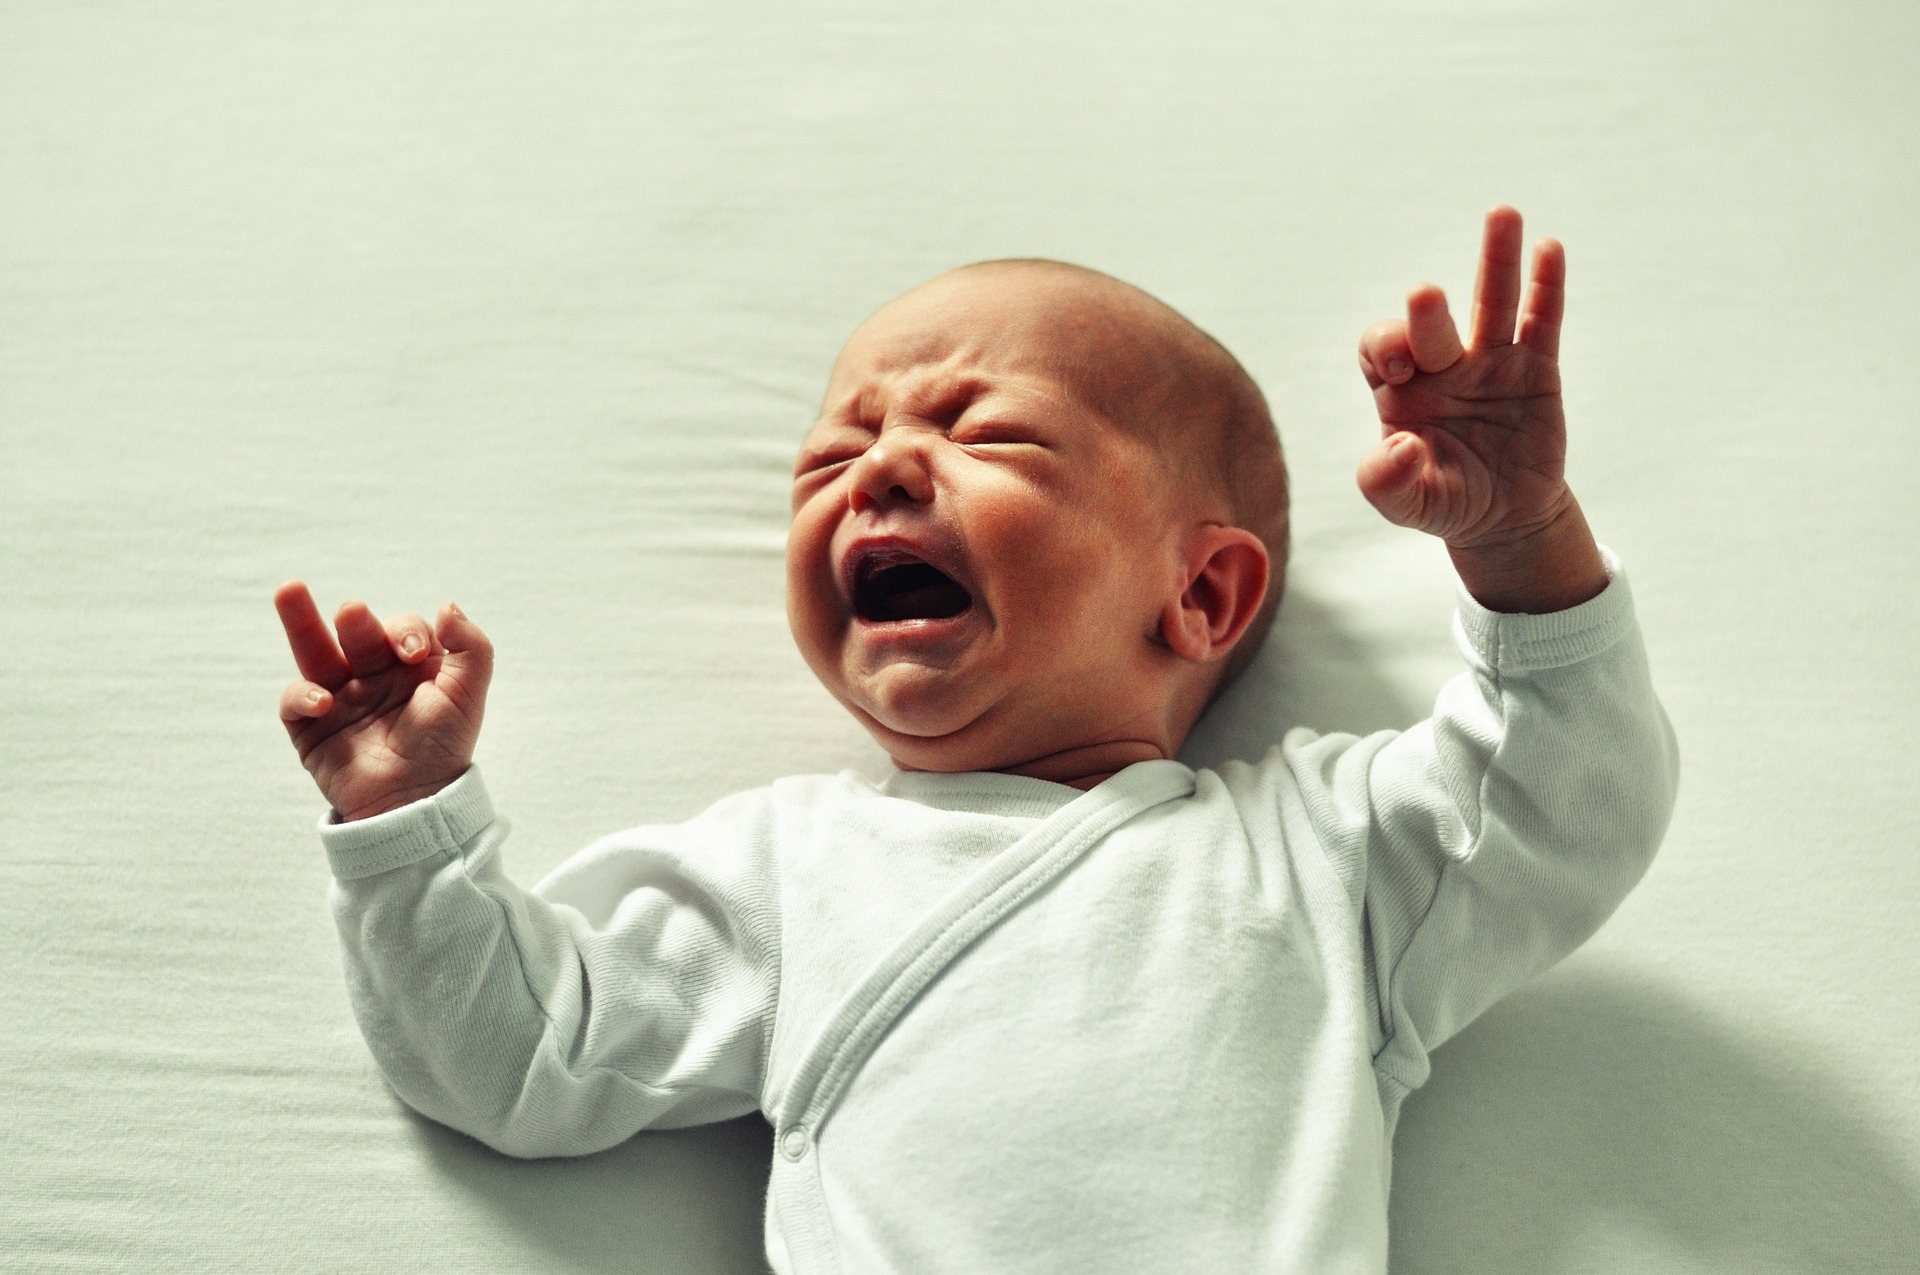 what causes colic in babies